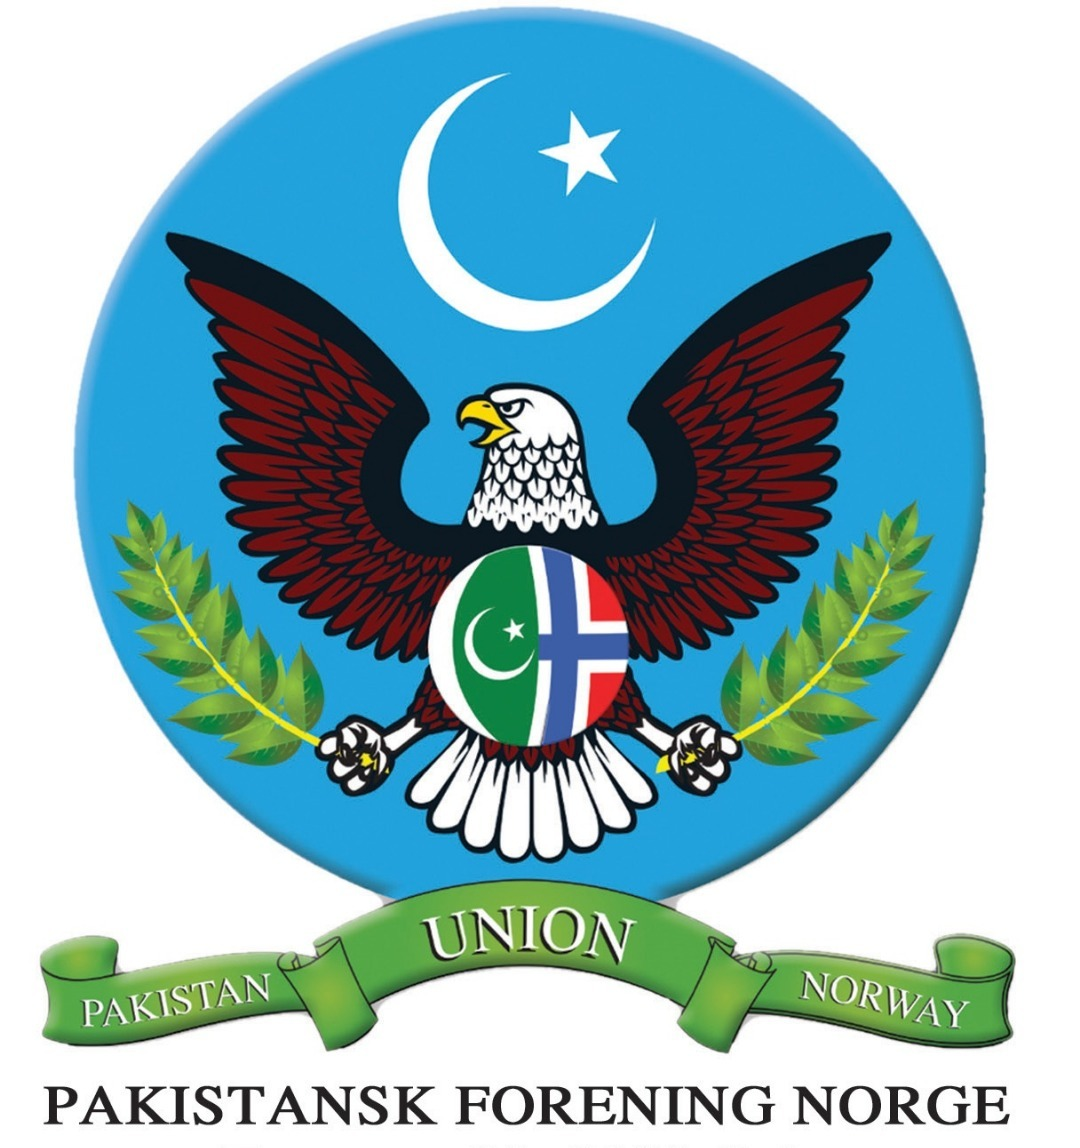 Pakistan Union Norway appoints a legal advisor for Overseas Pakistanis